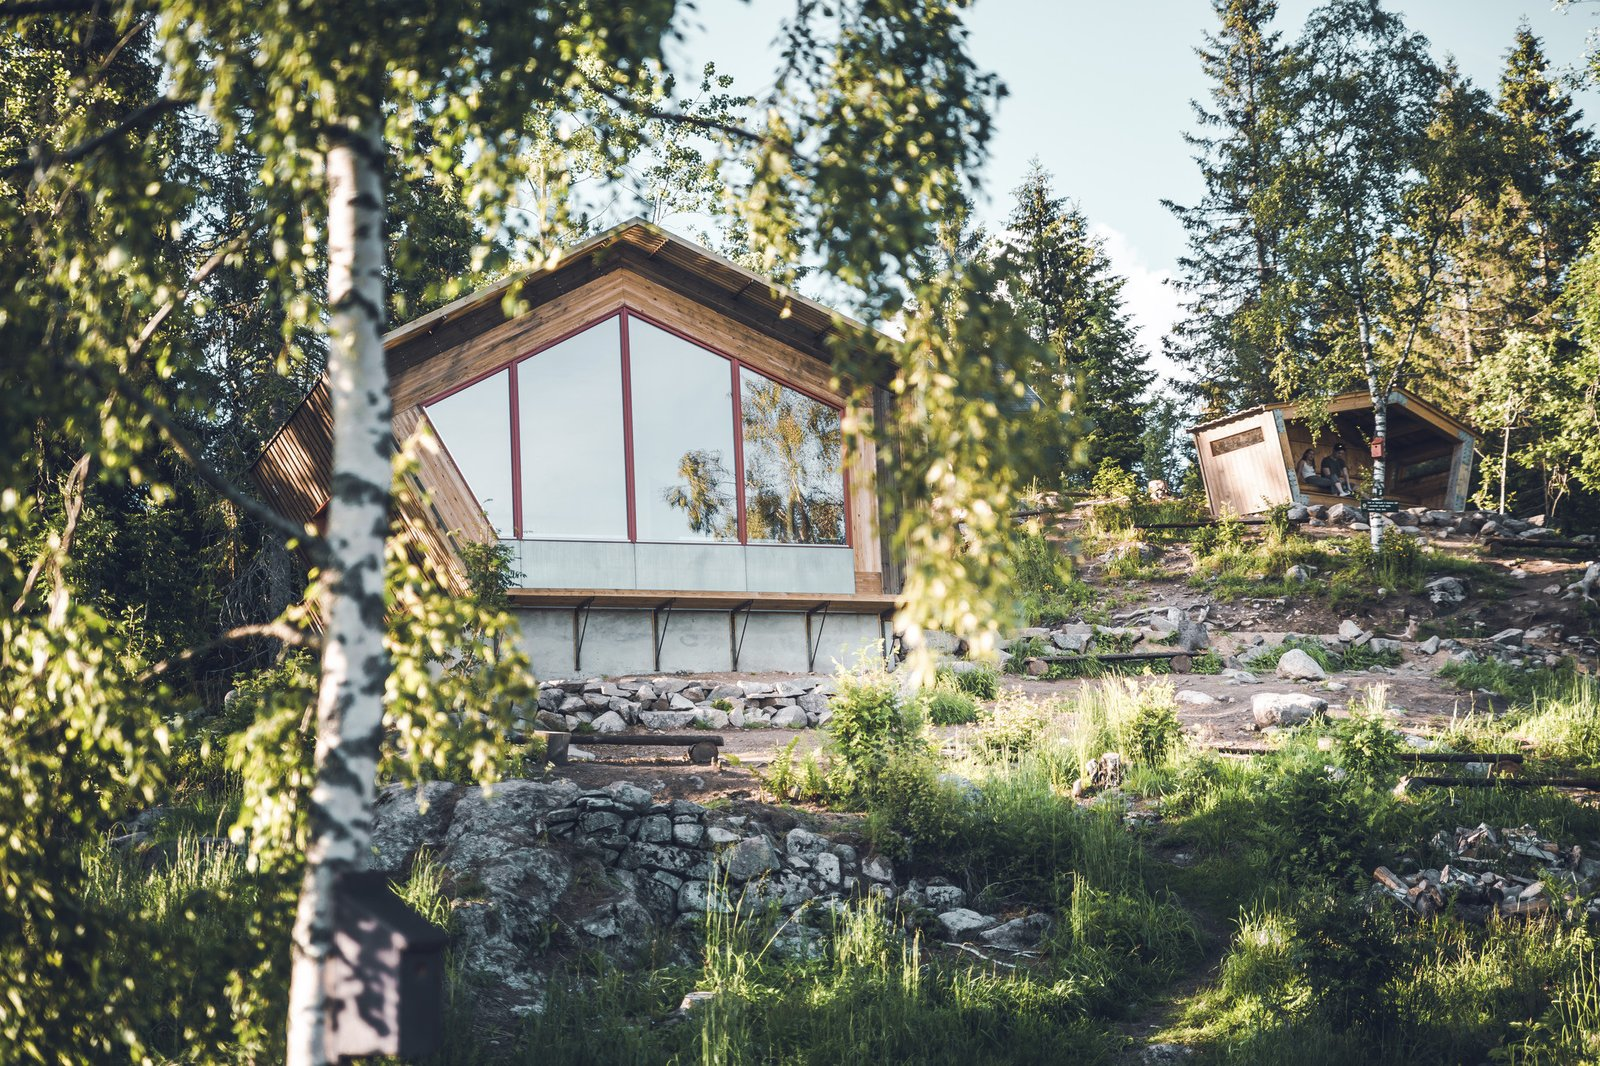 A traditional gapahuk shelter and an outhouse are some of the amenities offered at Fuglemyrhytta.